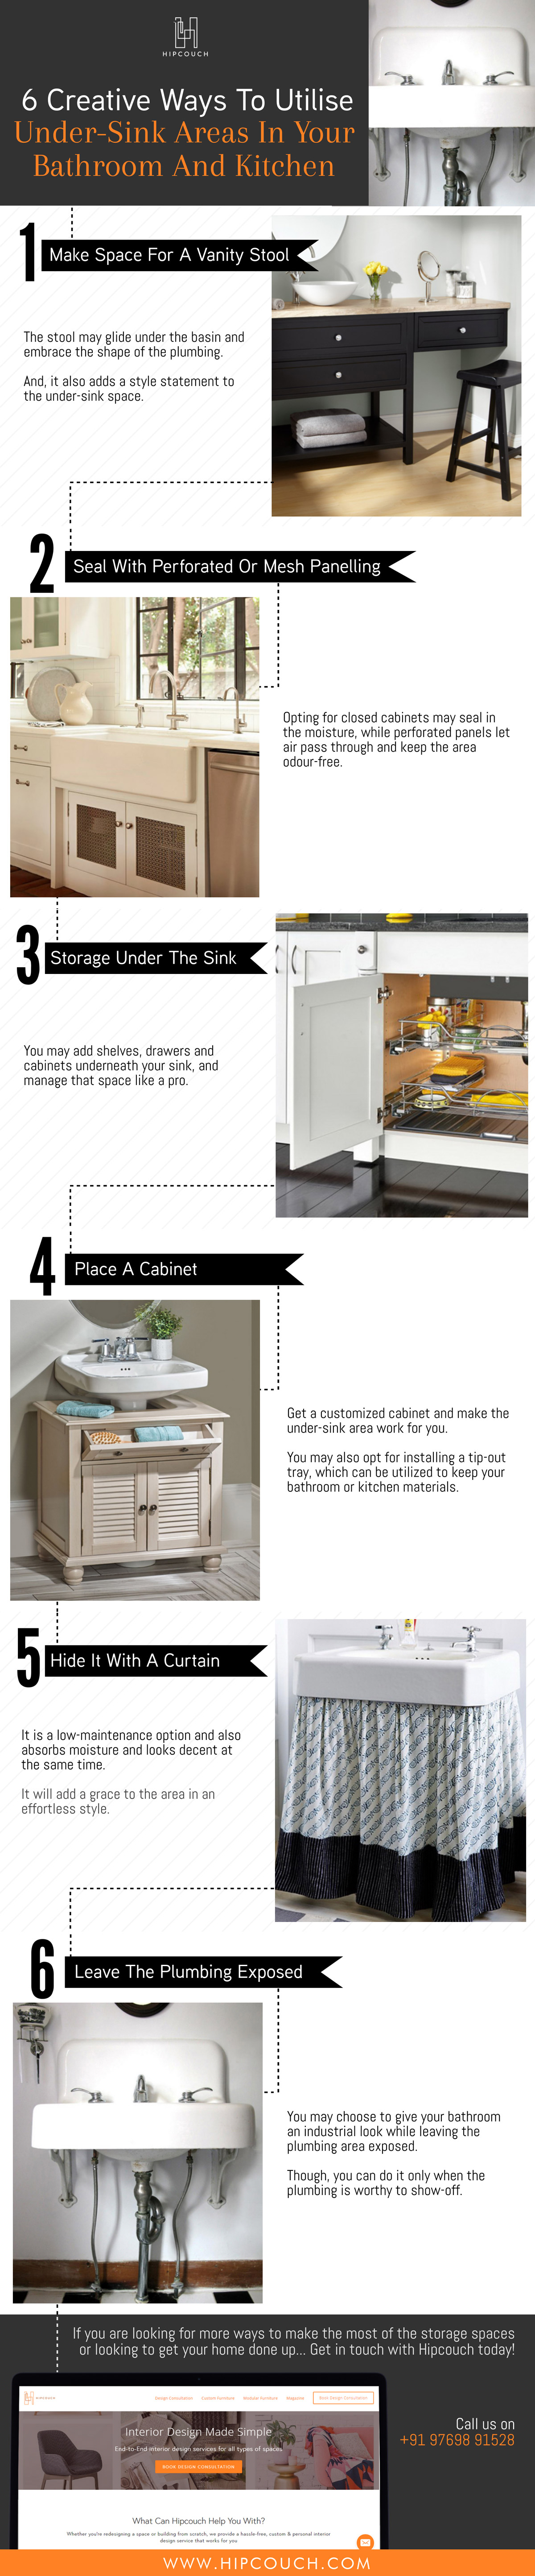 Creative Ways To Utilise The Under-Sink Areas In Your Bathroom And Kitchen